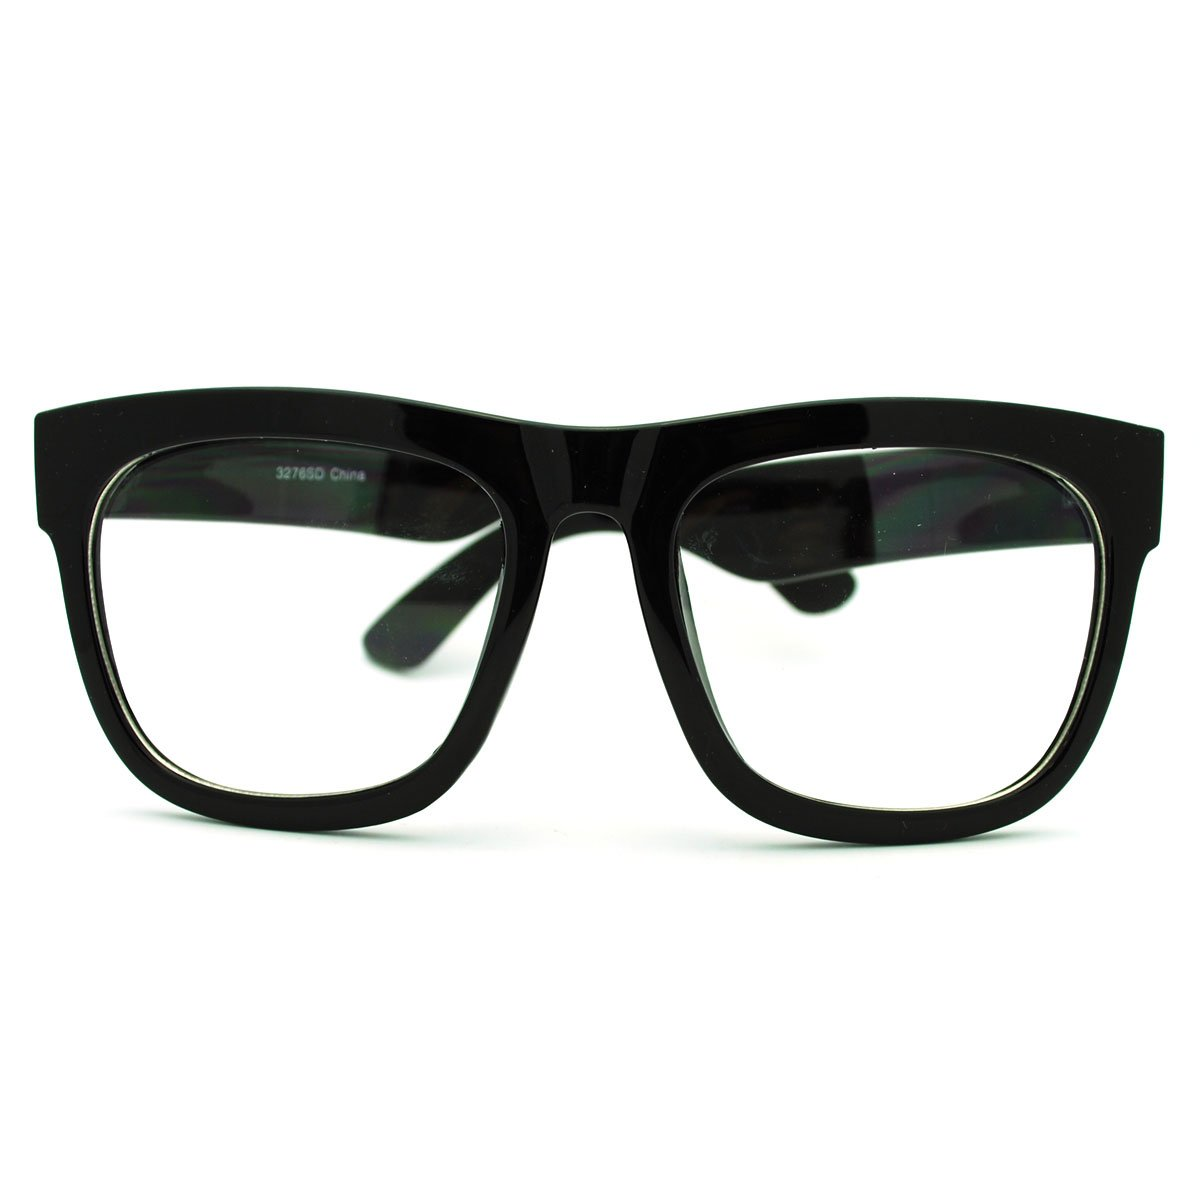 fa5c4b39b5 Amazon.com  Oversized Square Glasses Nerdy Clear Lens Mens Womens Fashion  Eyewear  Clothing